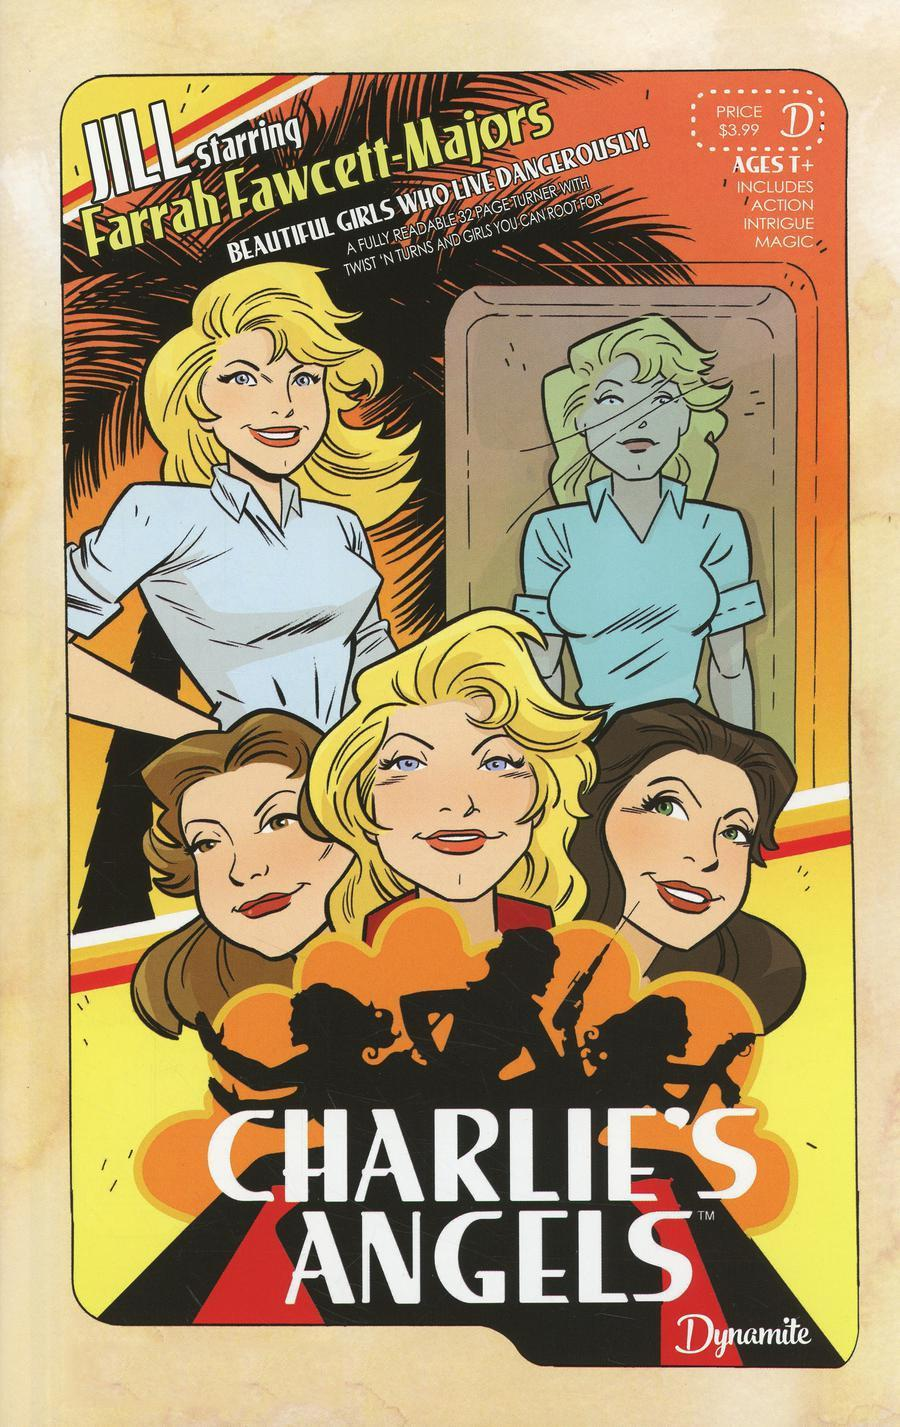 Charlies Angels #1 Cover H Variant SDCC 2018 Exclusive Color Cover